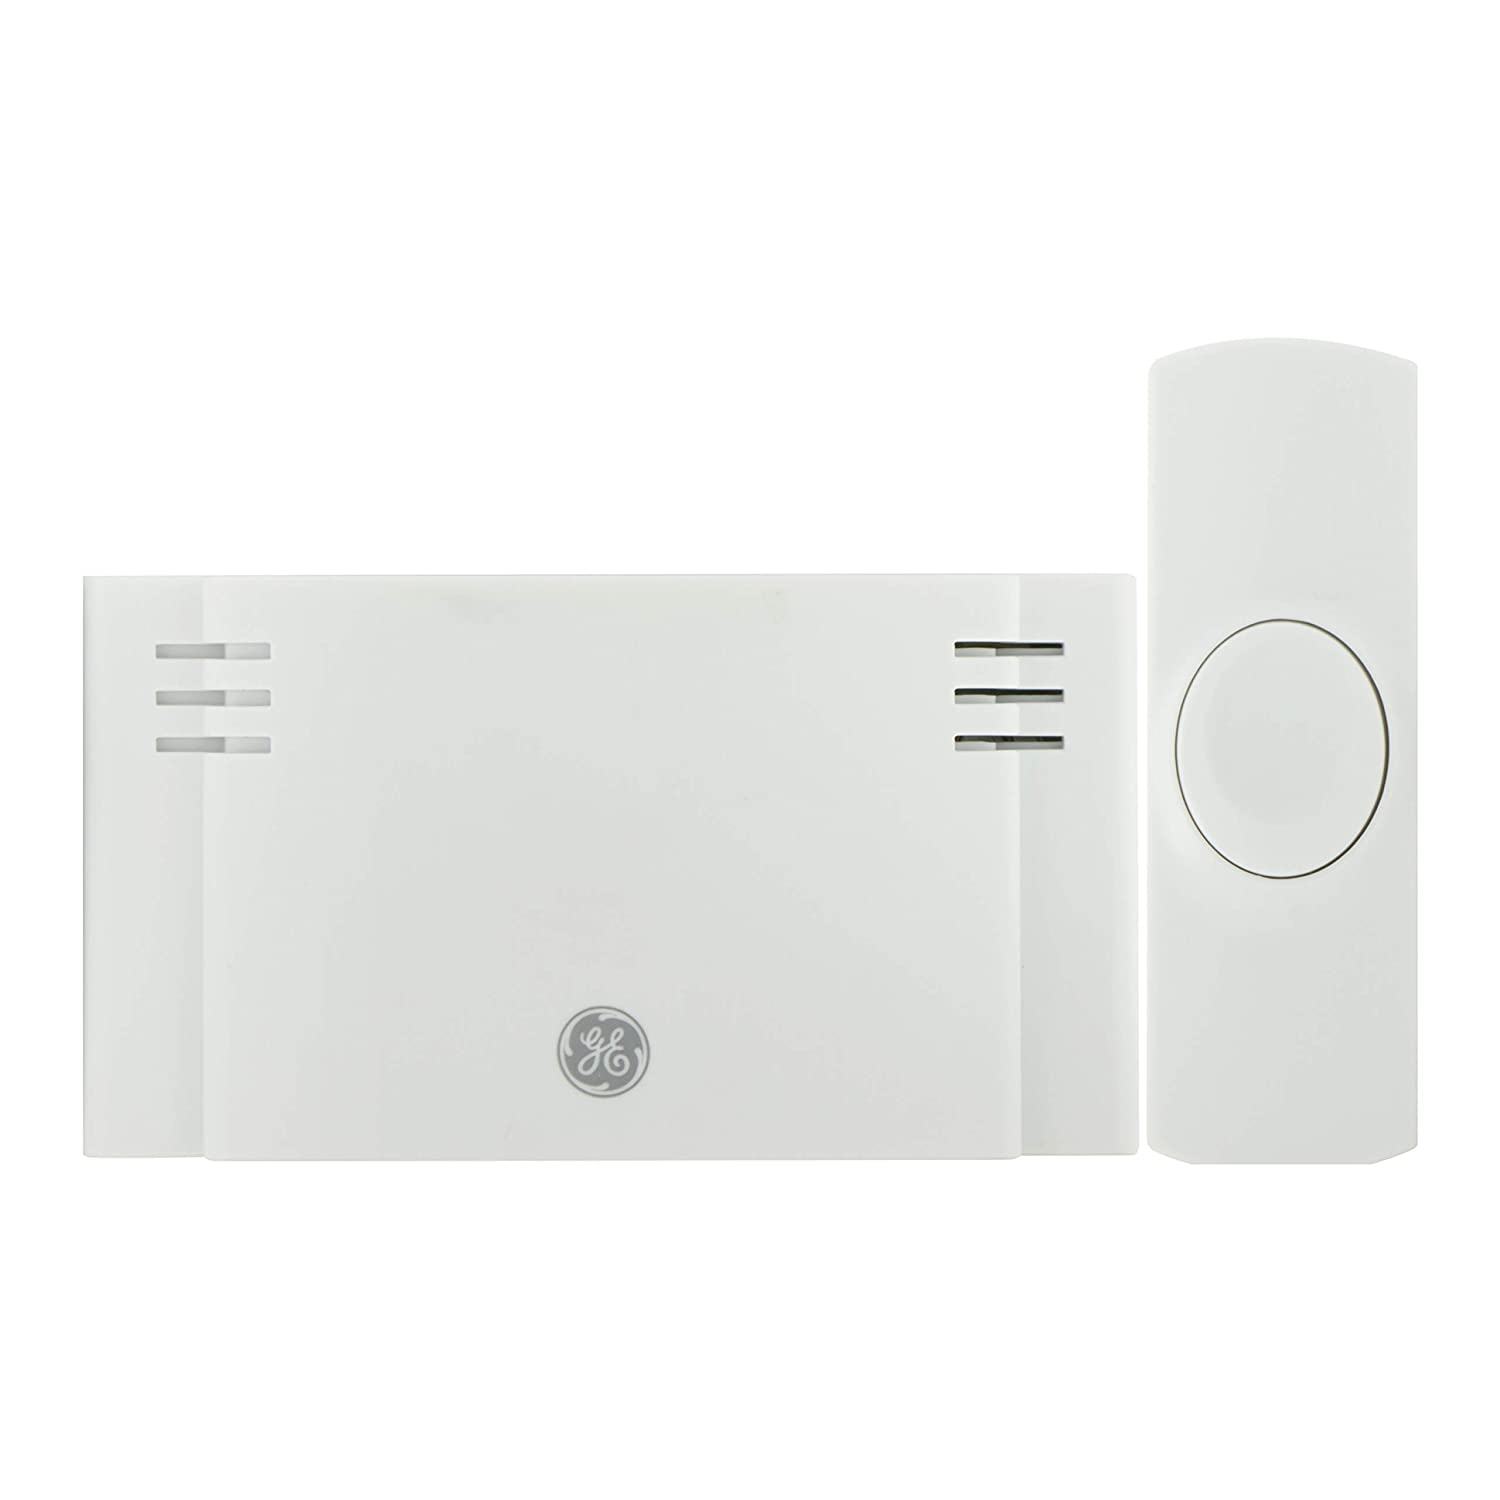 GE Wireless Doorbell Kit, 2 Chime Melodies, 1 Receiver, 1 Push Button, Battery-Operated, 150 Feet Range, White, 19247